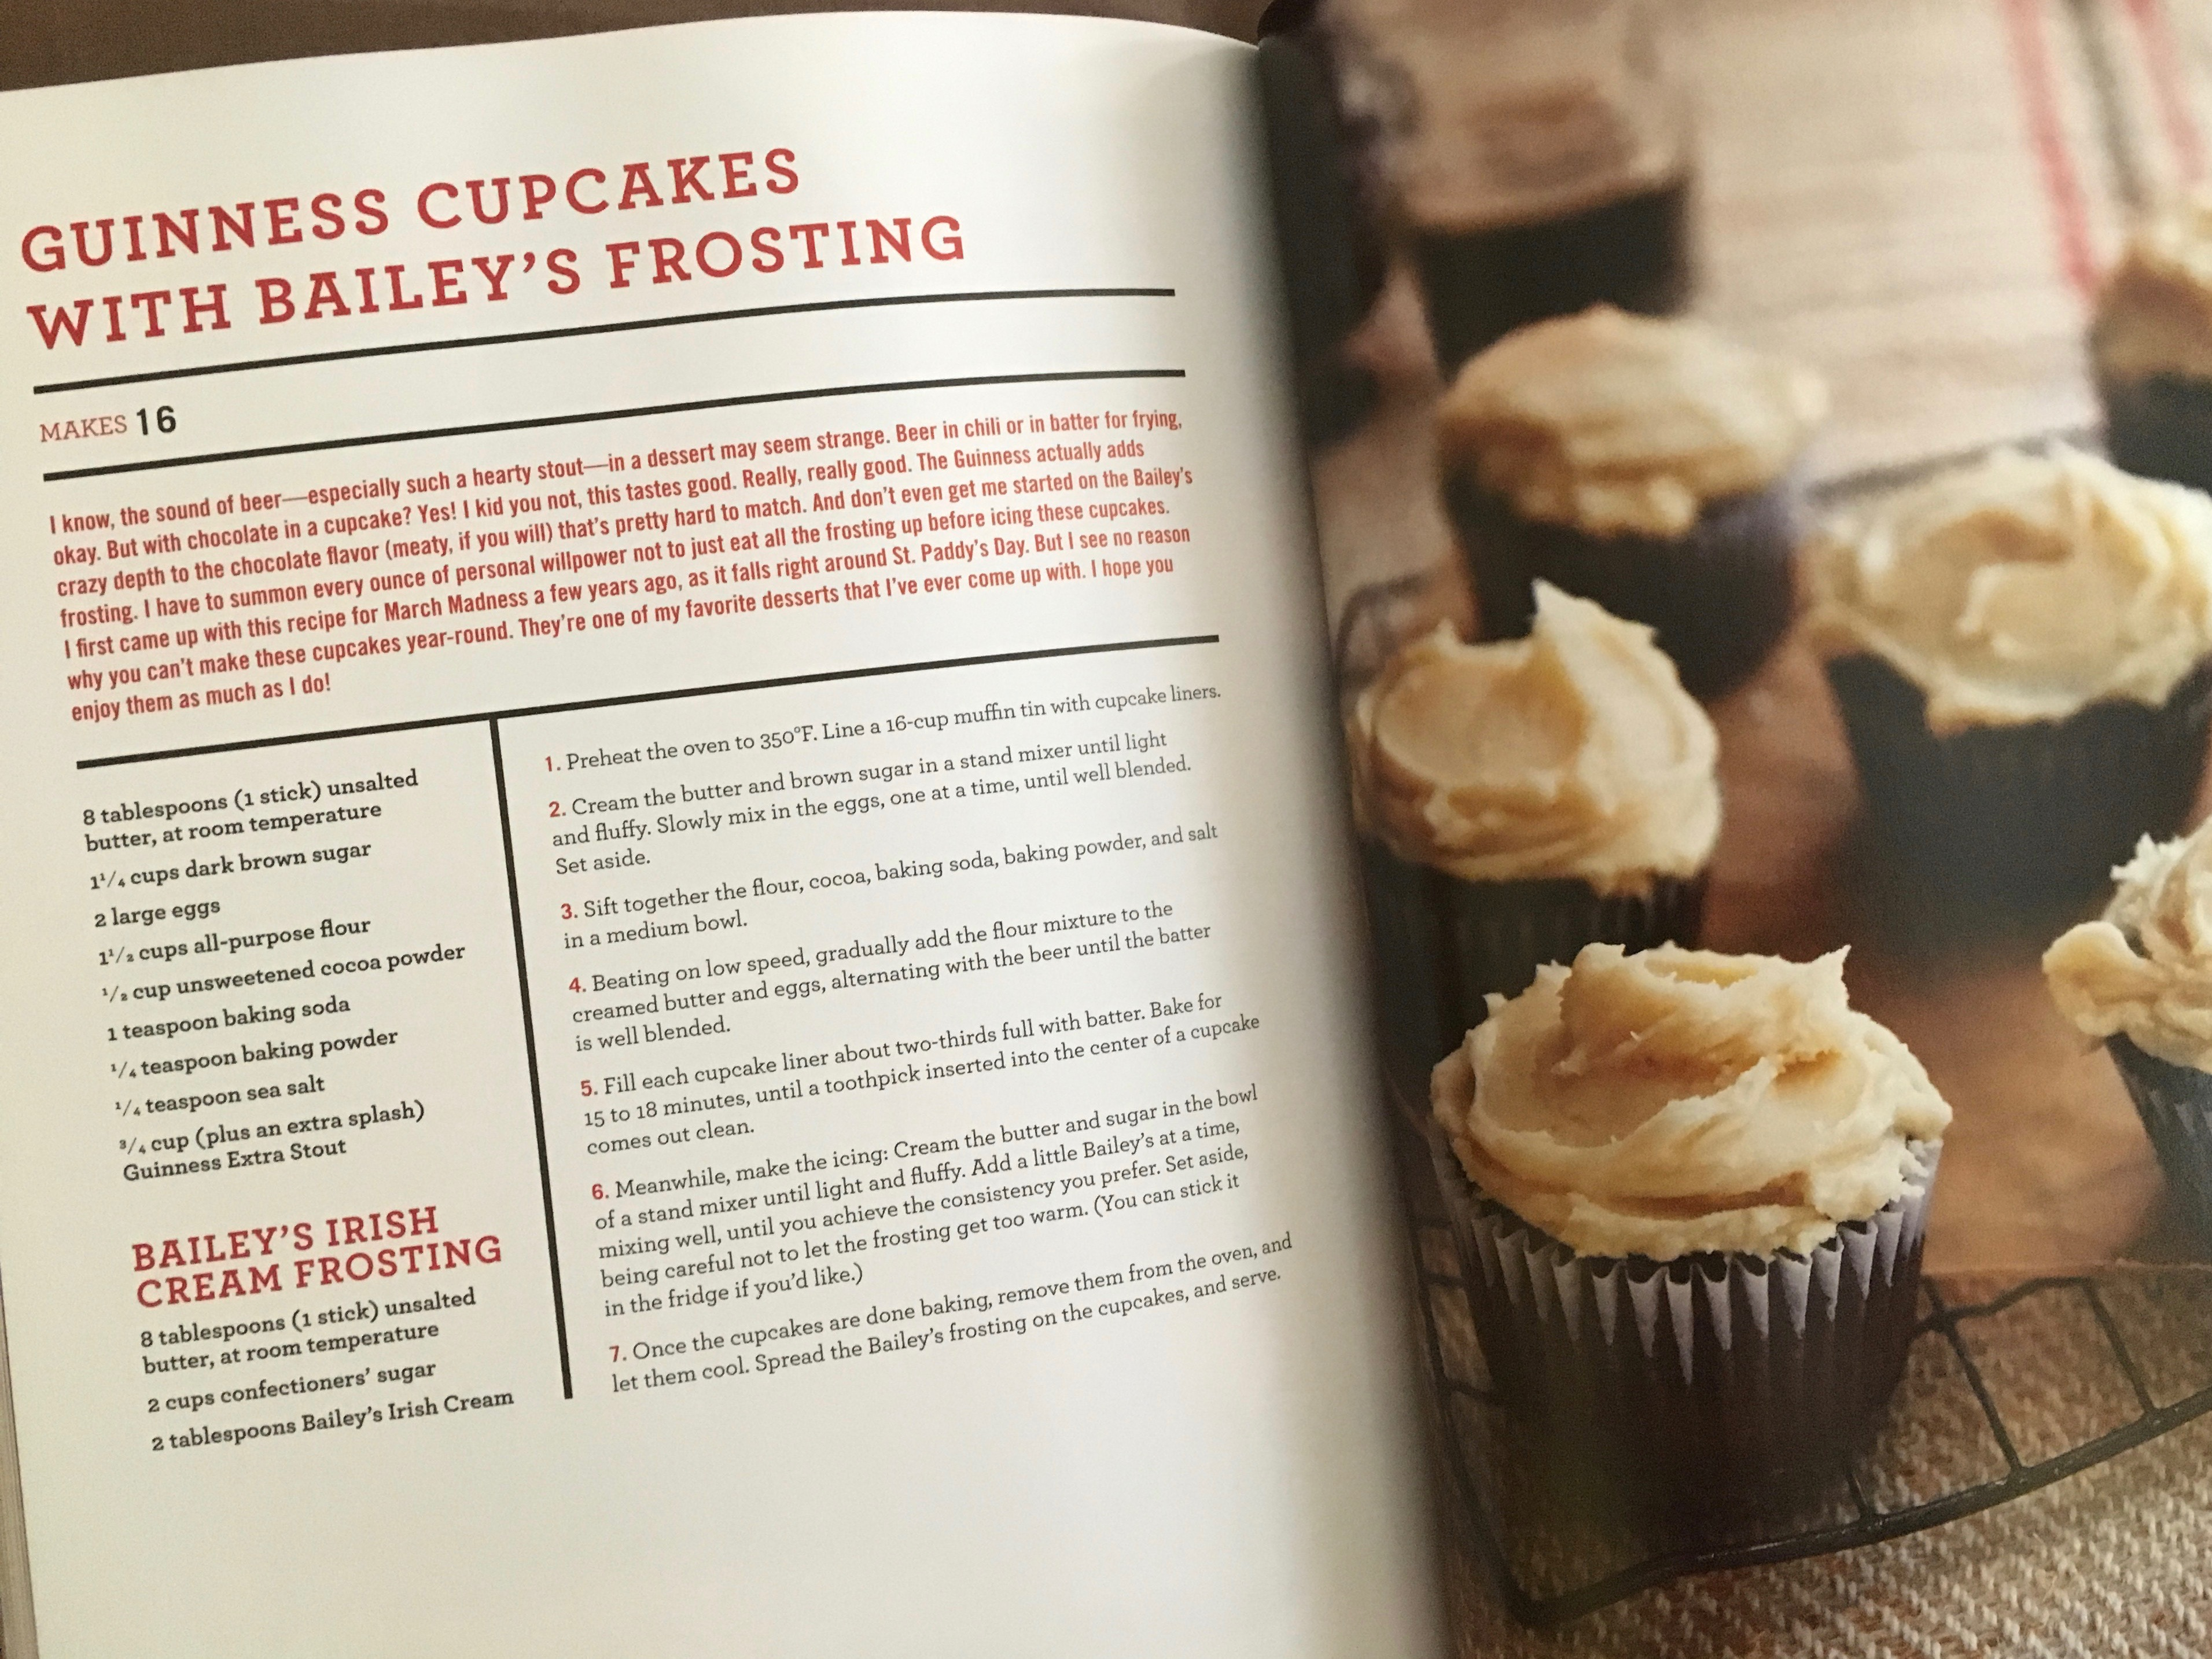 Guinness Cupcakes with Bailey's Frosting from The Hungry Fan's Game Day Cookbook.